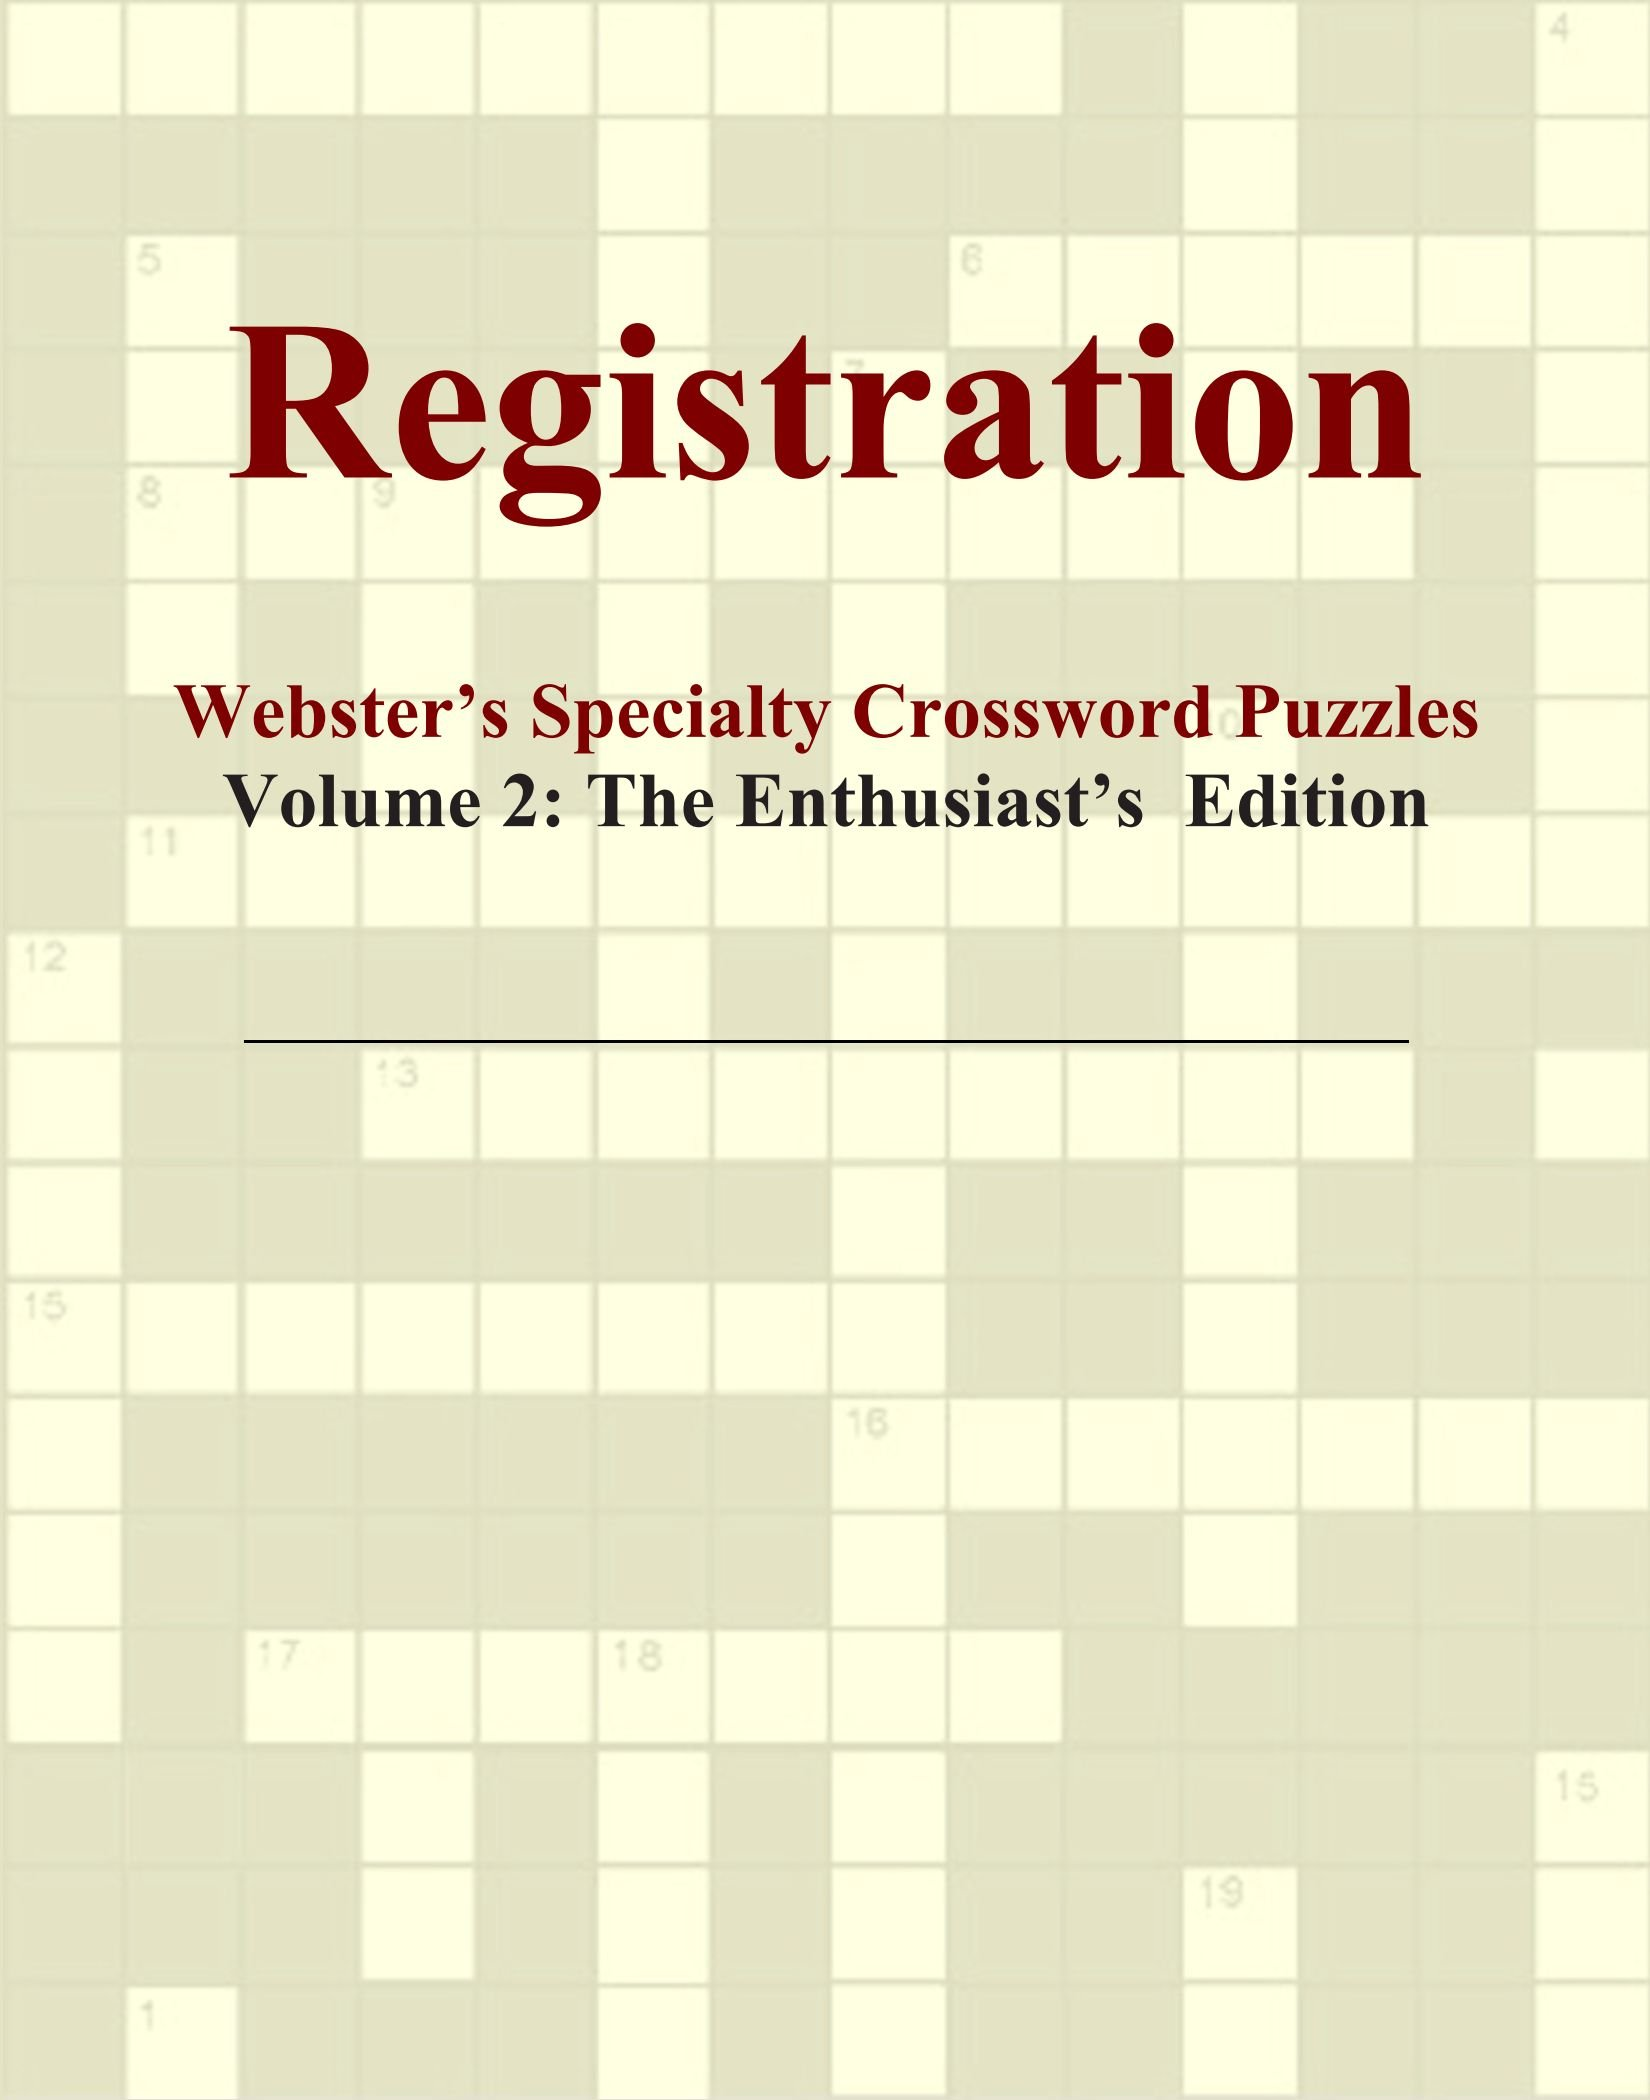 Download Registration - Webster's Specialty Crossword Puzzles, Volume 2: The Enthusiast's Edition PDF